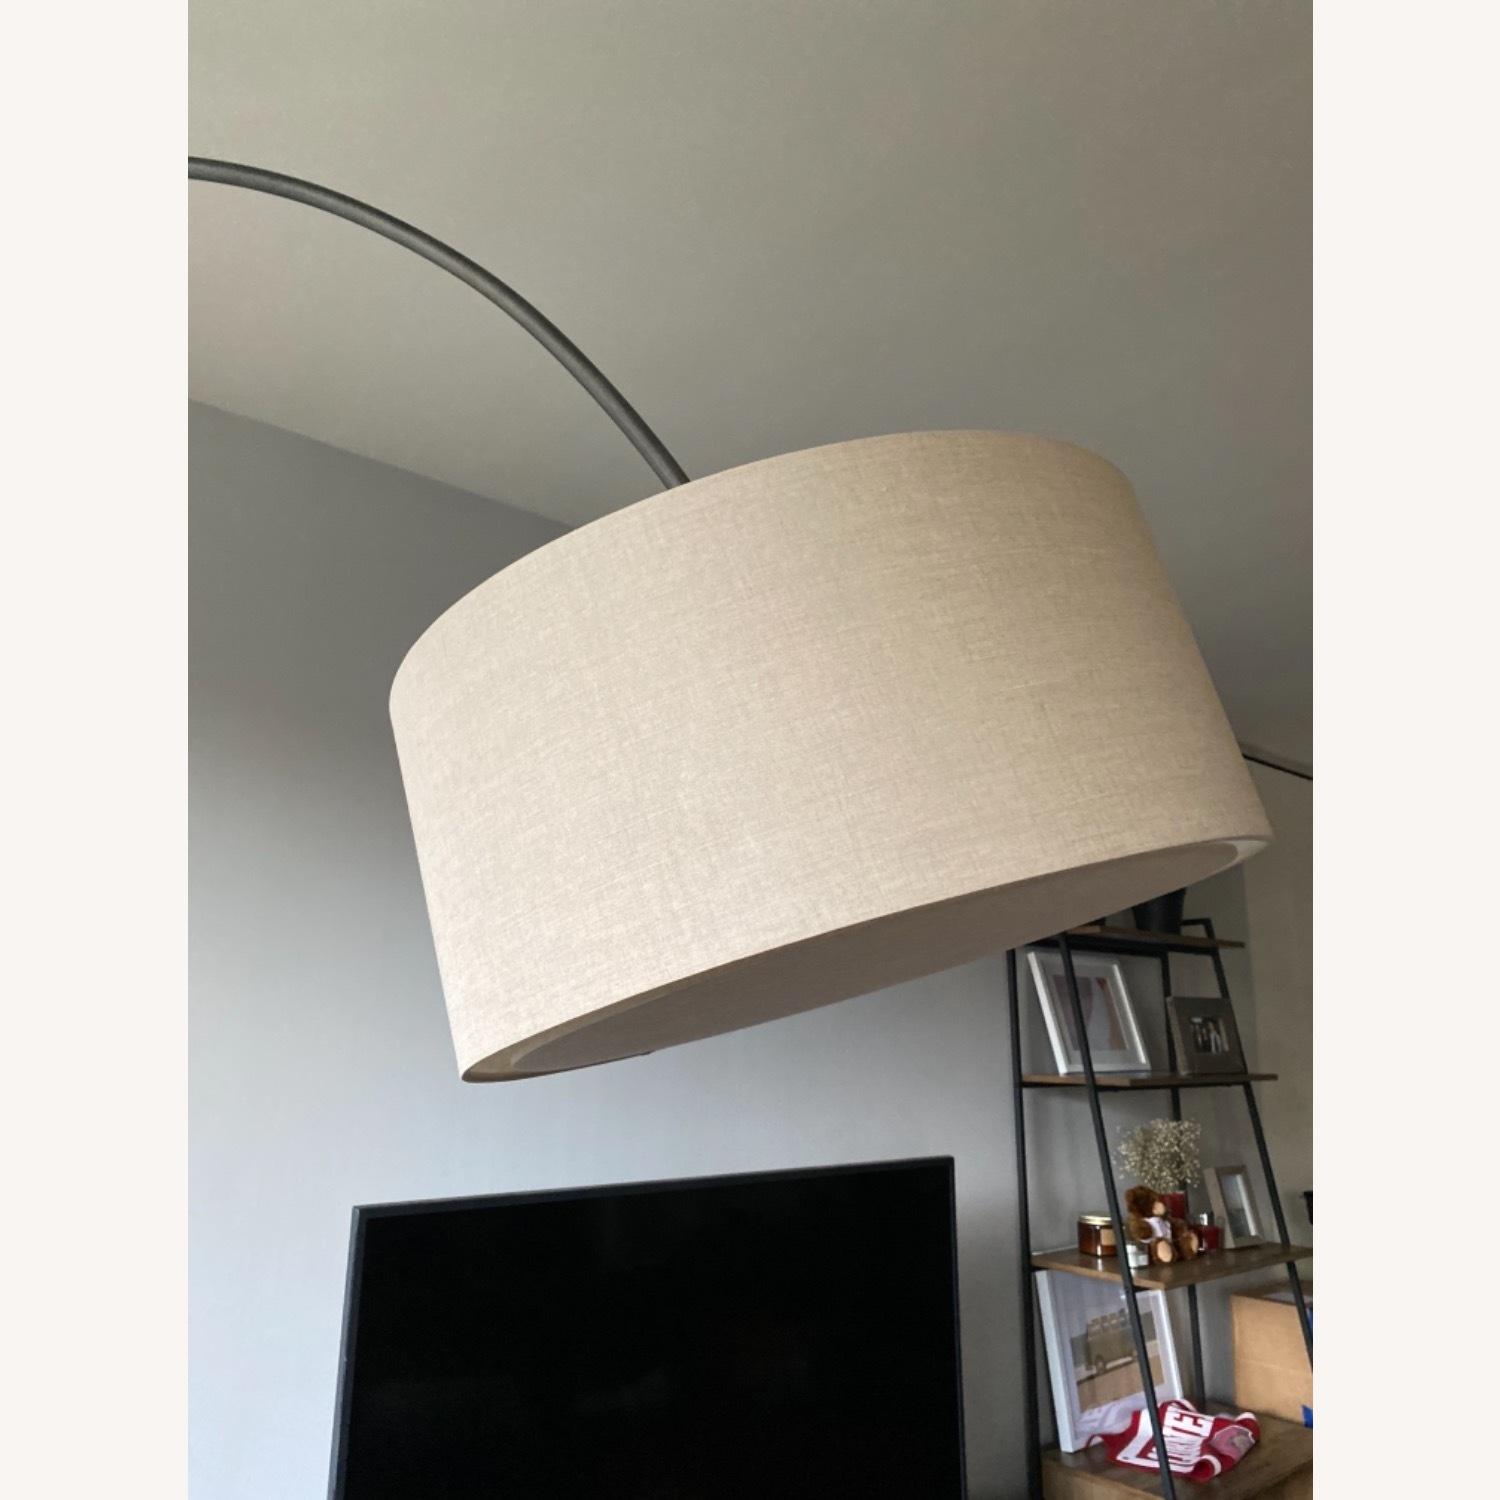 CB2 Arched Floor Lamp Beige Shade Concrete Base - image-6